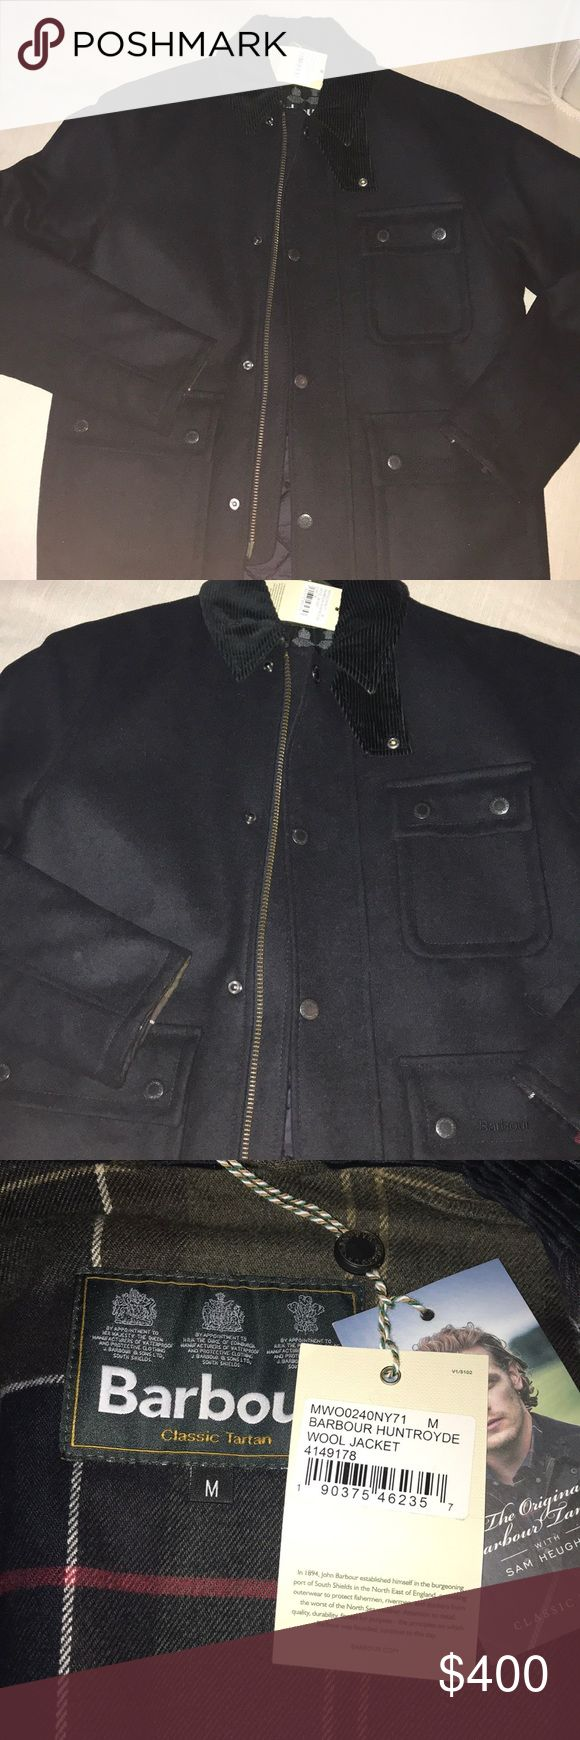 Mens Barbour huntrodyne wool coat size M NWT Barbour Huntrodyne mens insulate wool coat size medium. Navy blue material with Barbour plaid interior Barbour Jackets & Coats Pea Coats